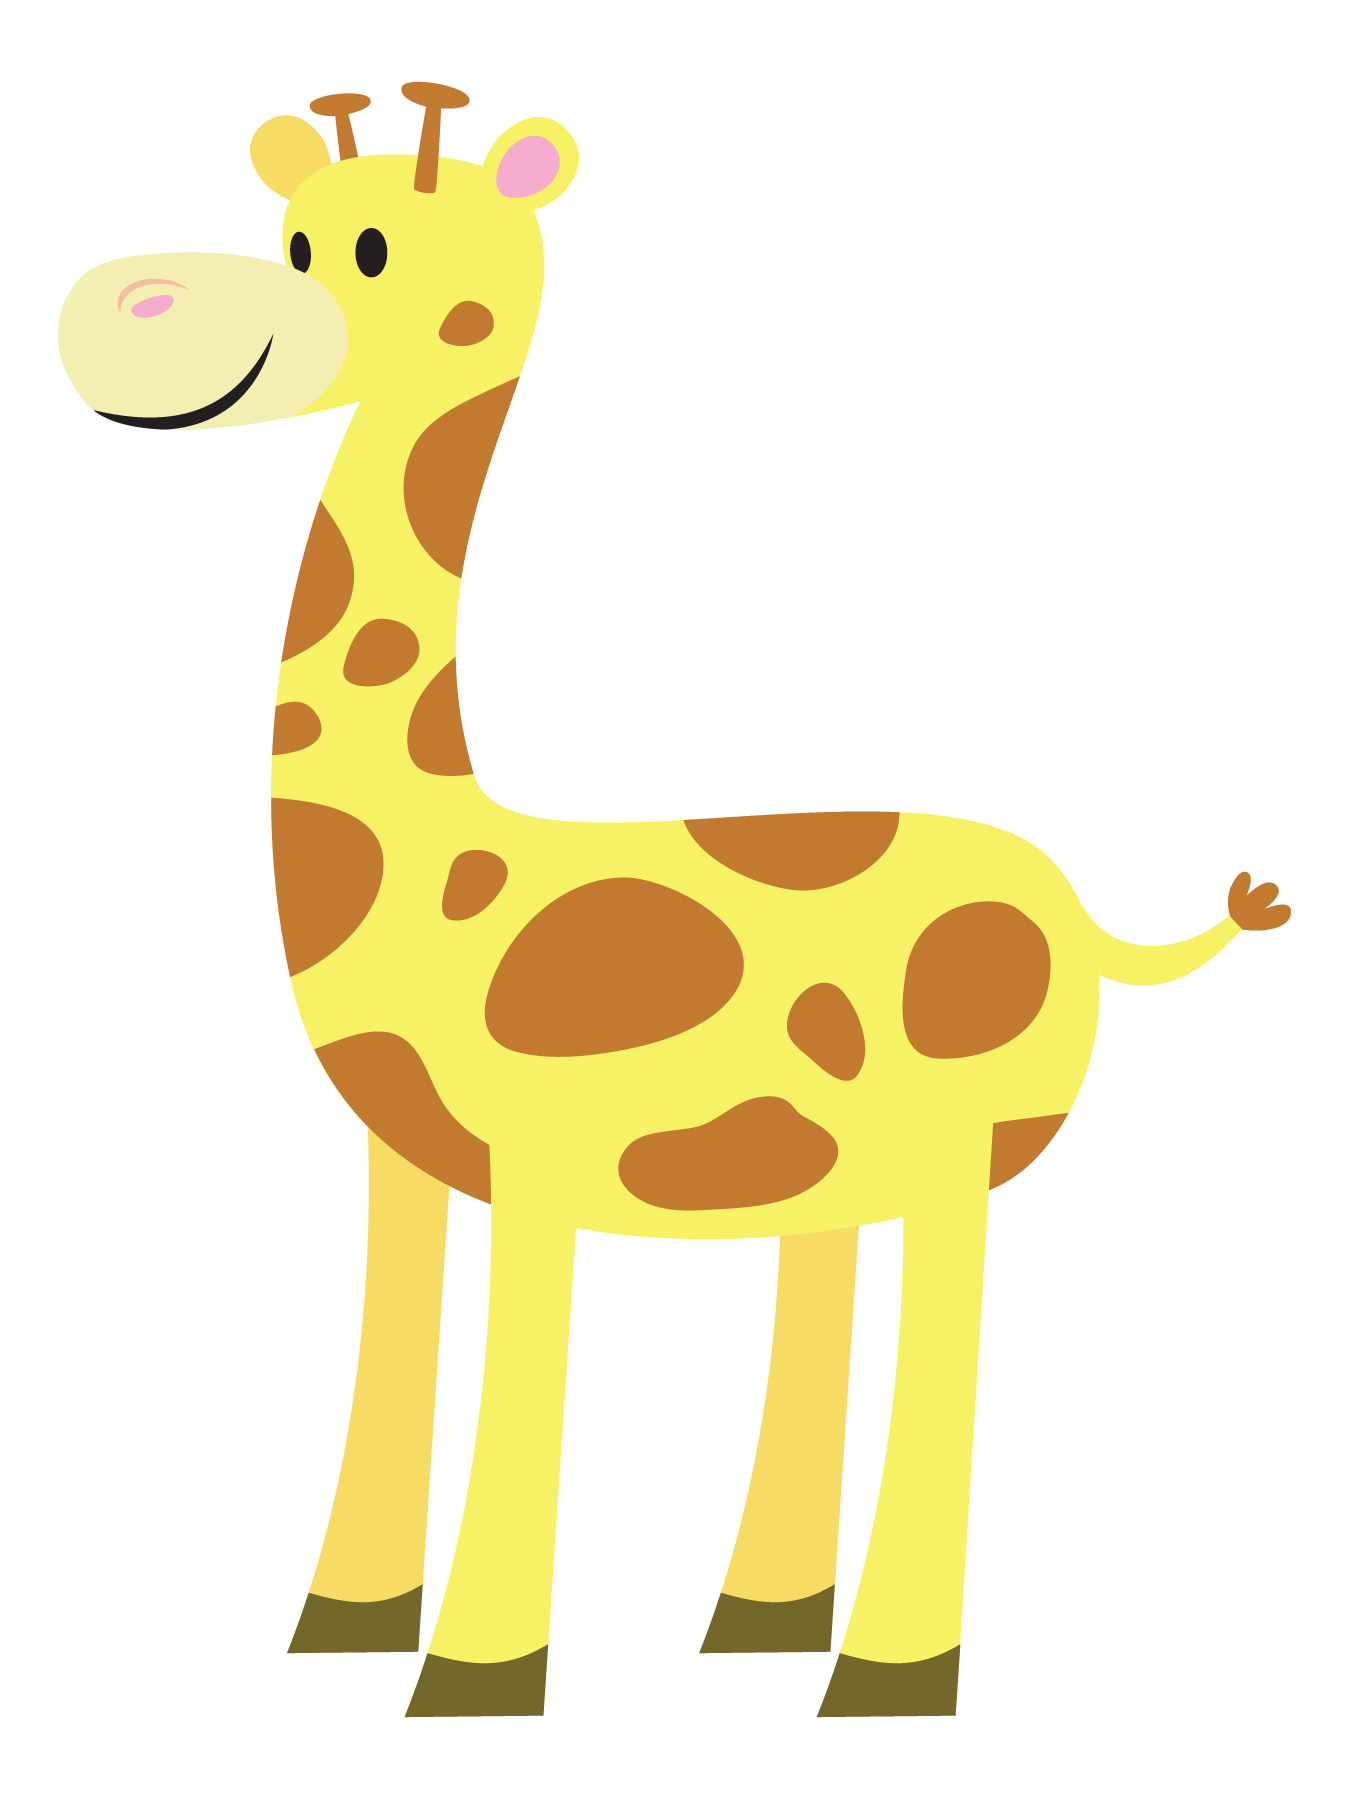 jpg free stock Giraffe clipart. Cute